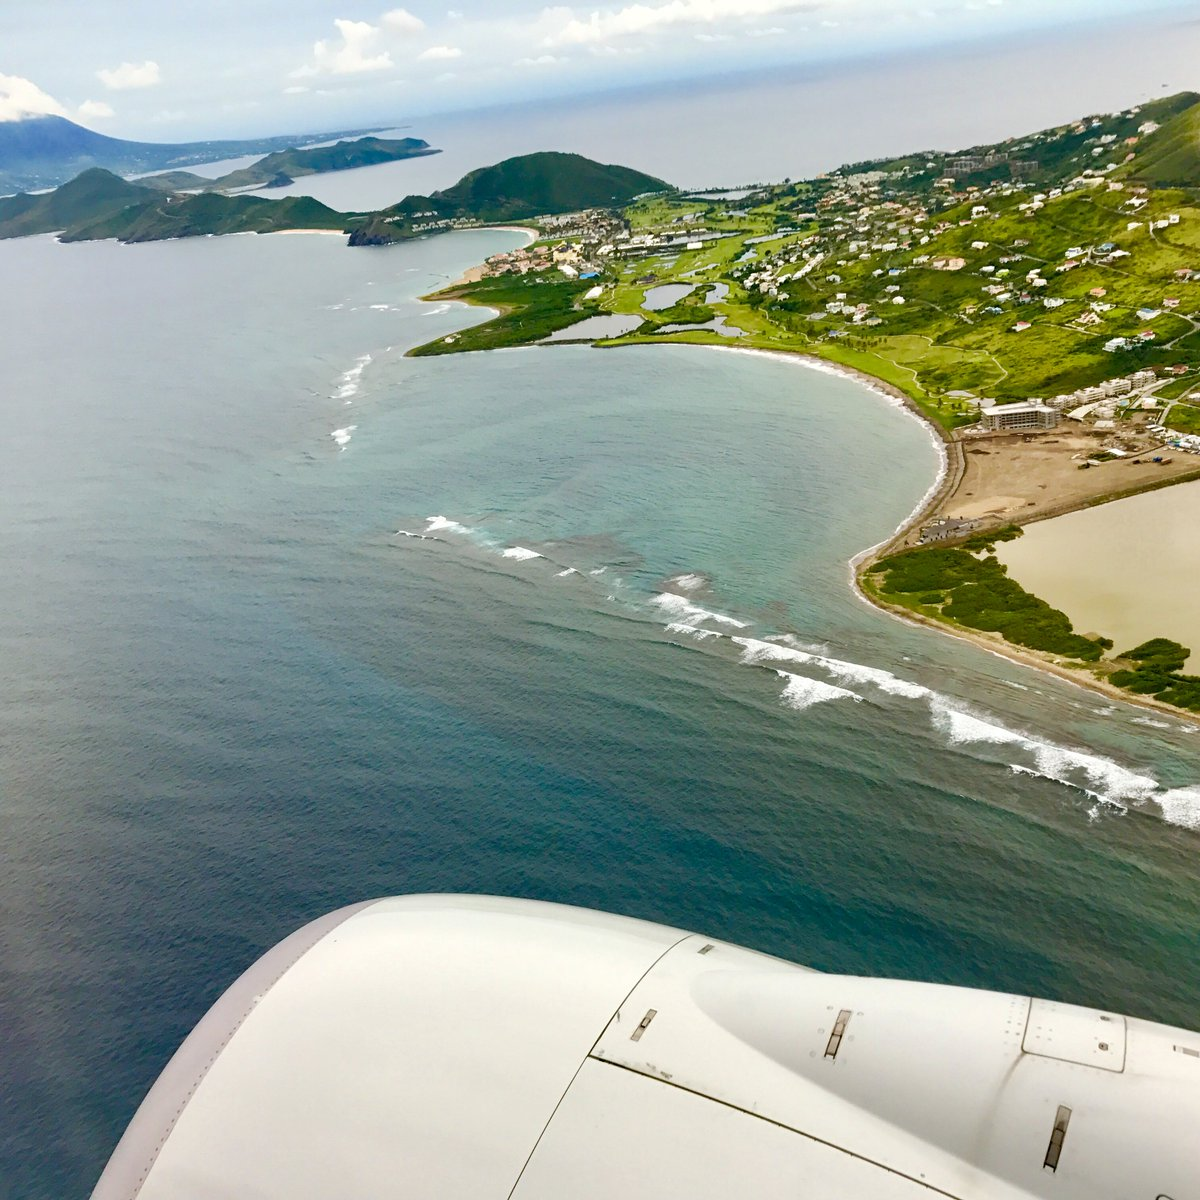 Who Flies To St Kitts: St. Kitts Tourism (@StKittsTourism)